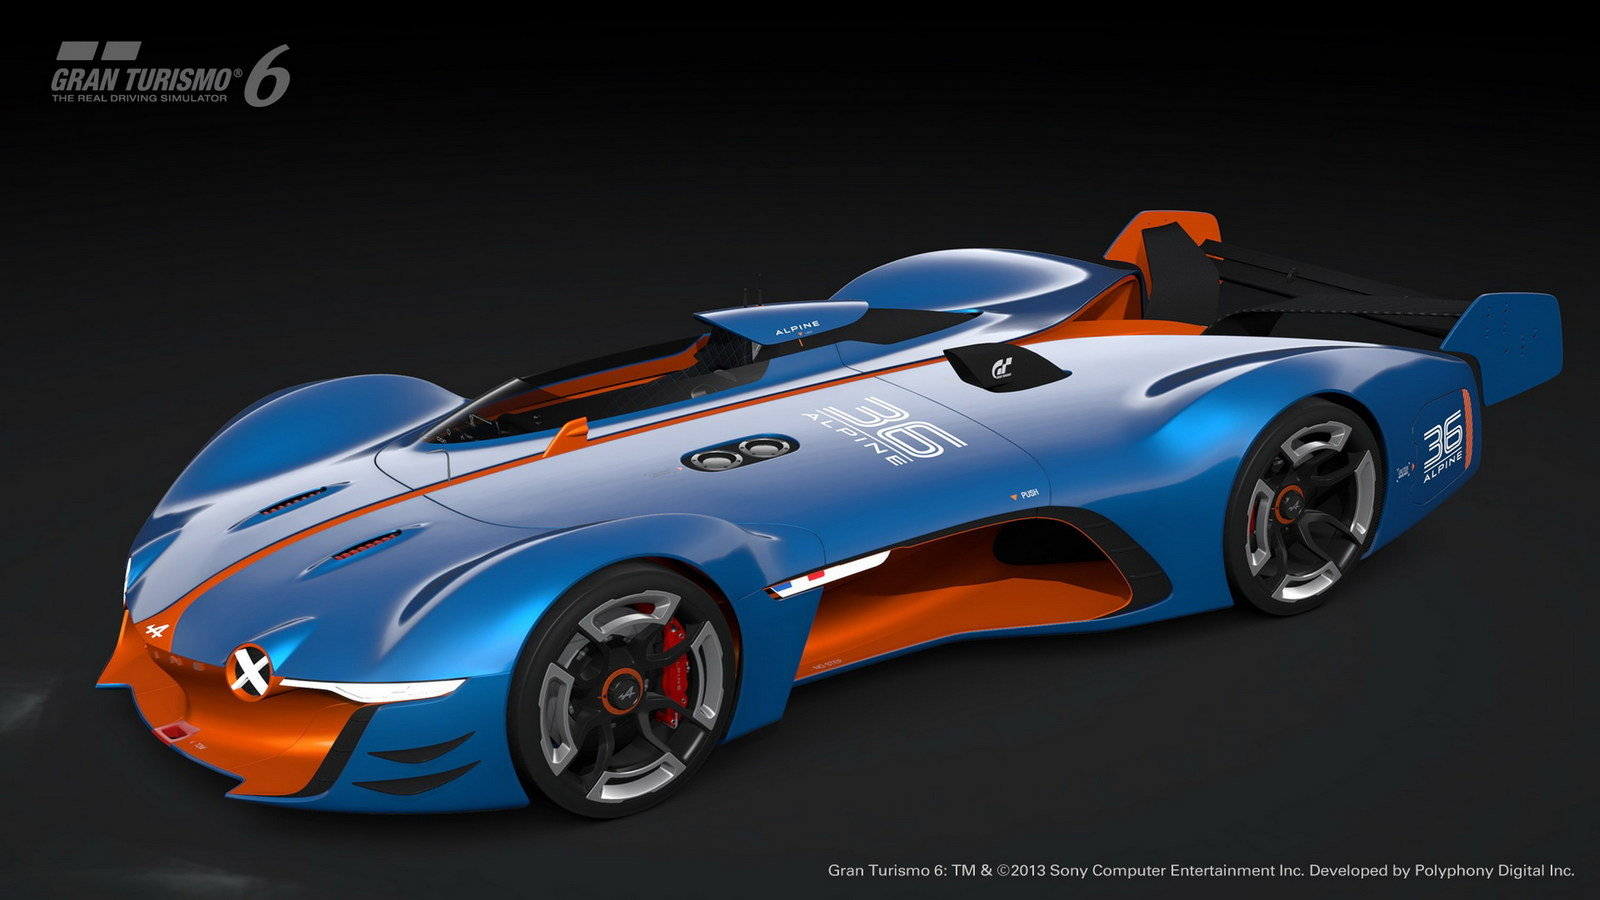 Colour a car - I Have Installed The Alpine Vision Gt Concept But I Would Like To Force It To Use Just The Two Colour Sets It Seems To Have Been Shown In Namely This One